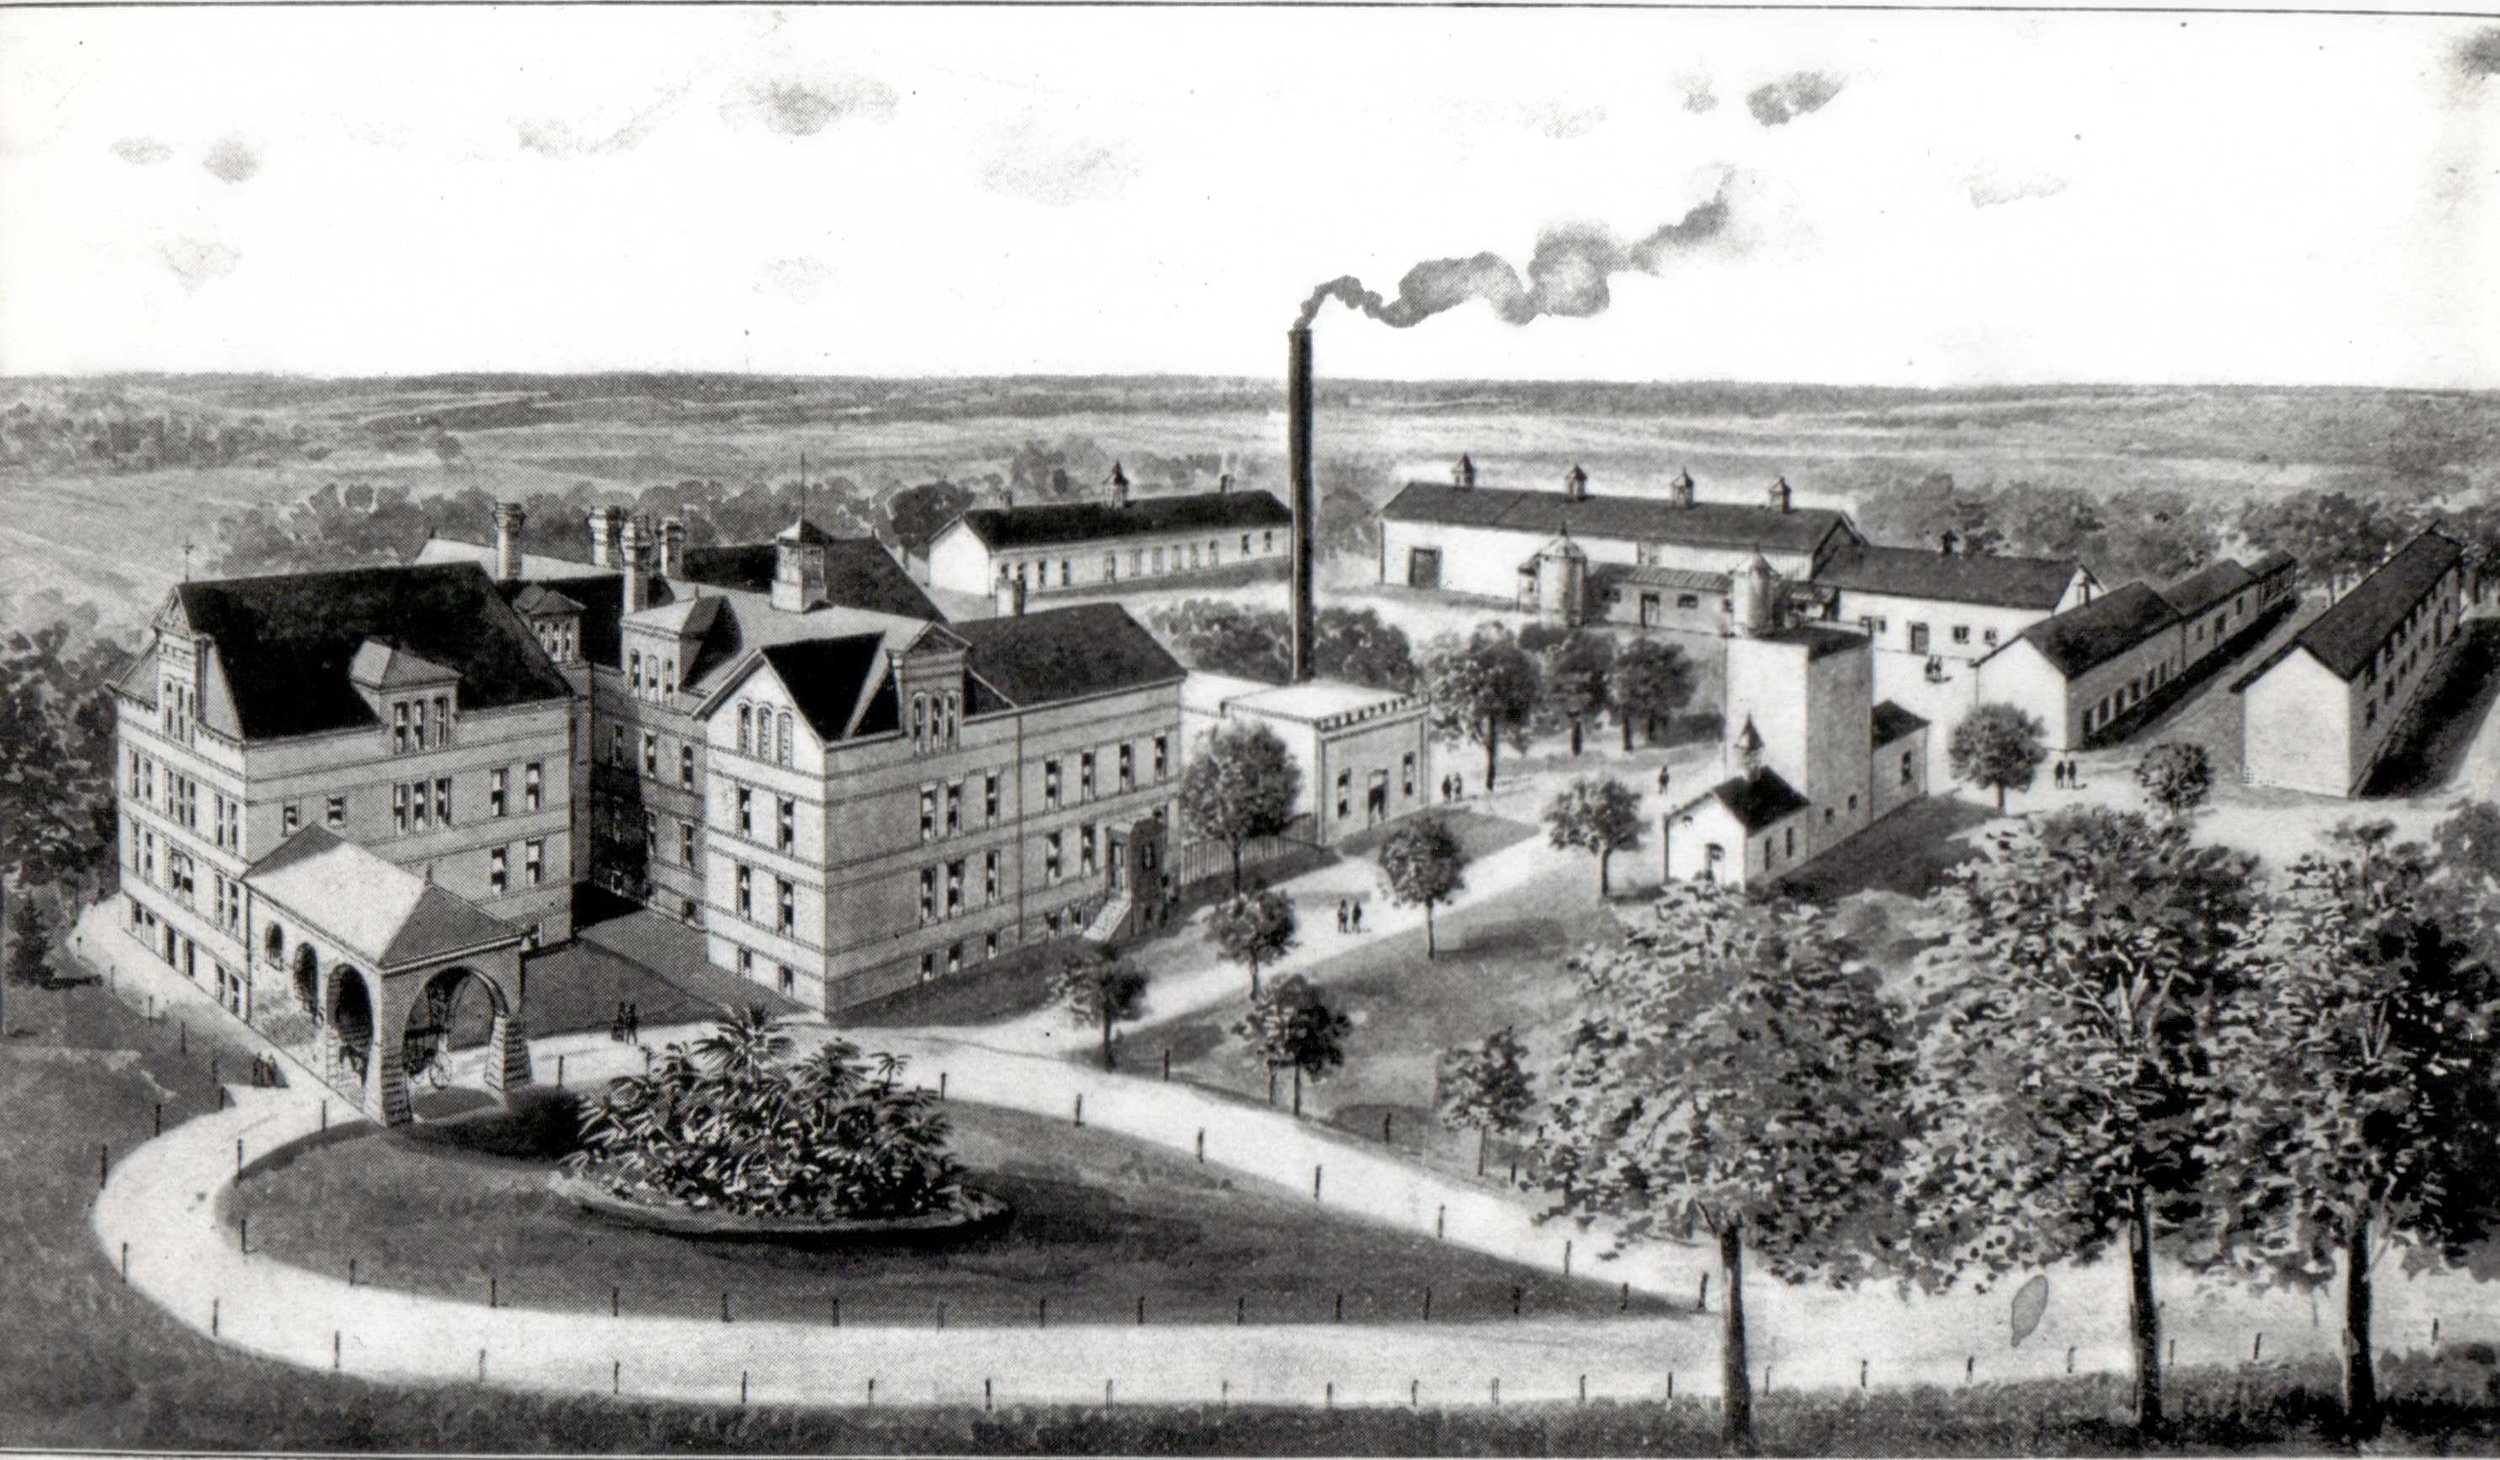 Line drawing of the Manitowoc County Hospital for the Insane, circa 1895.